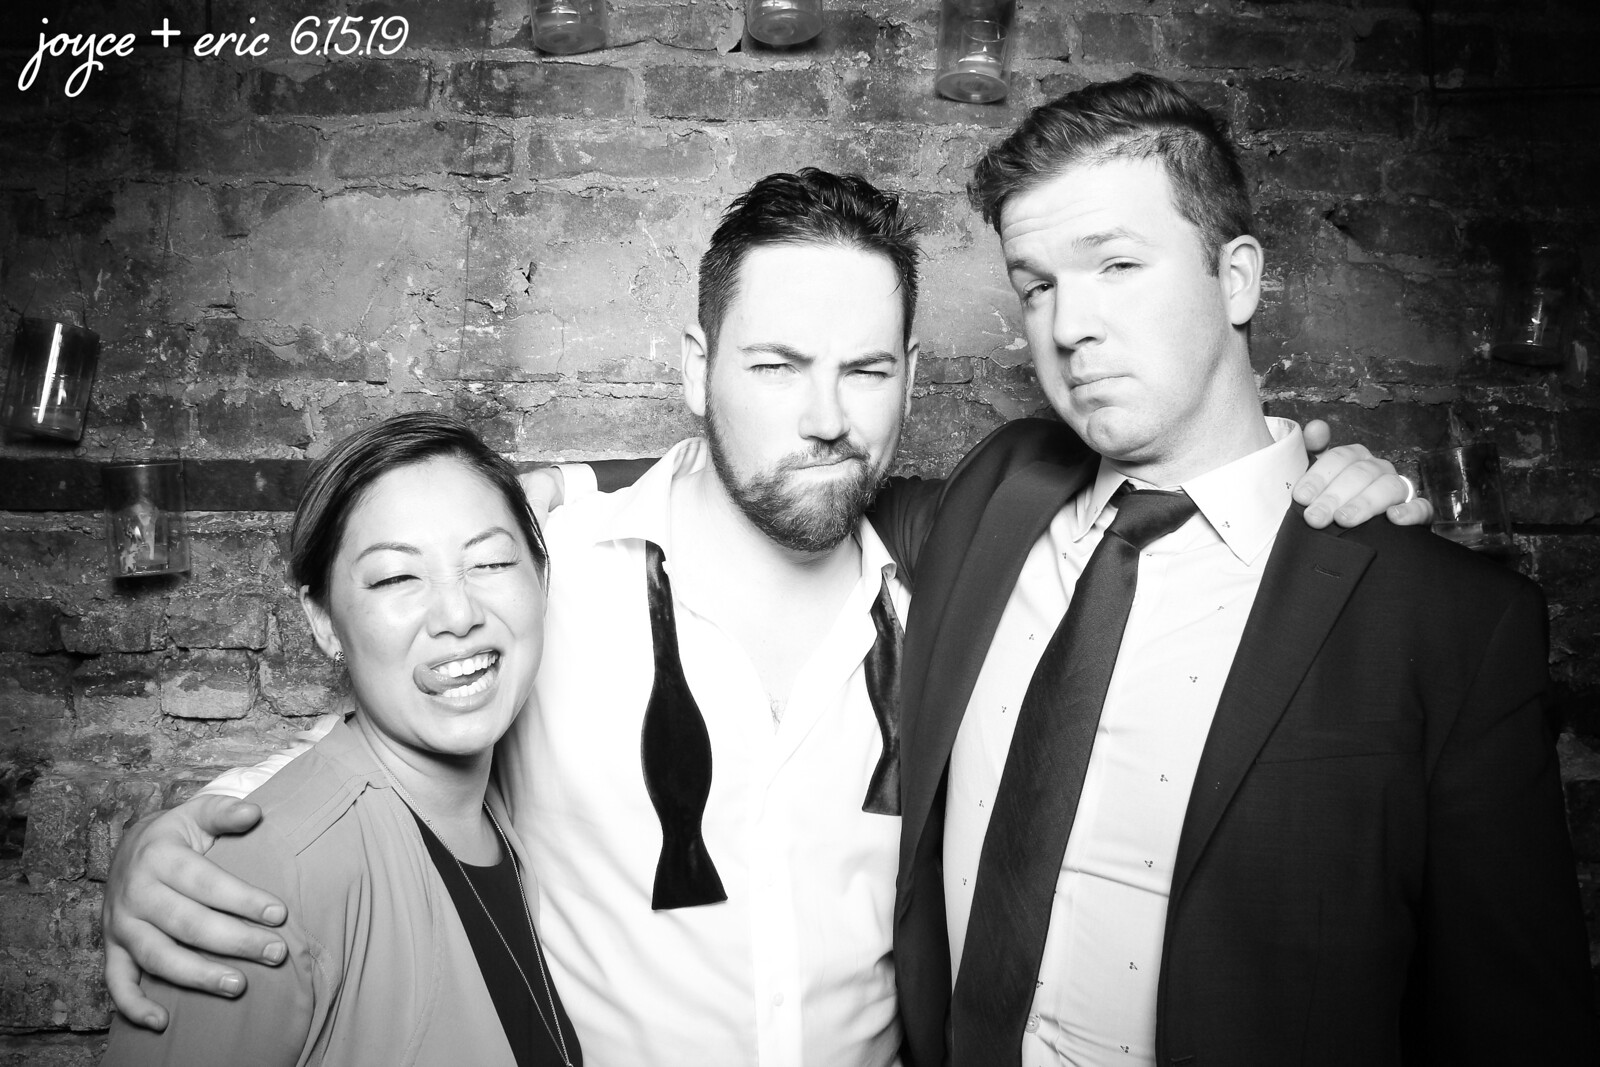 Chicago_Vintage_Wedding_Photobooth_New_Leaf_21.jpg